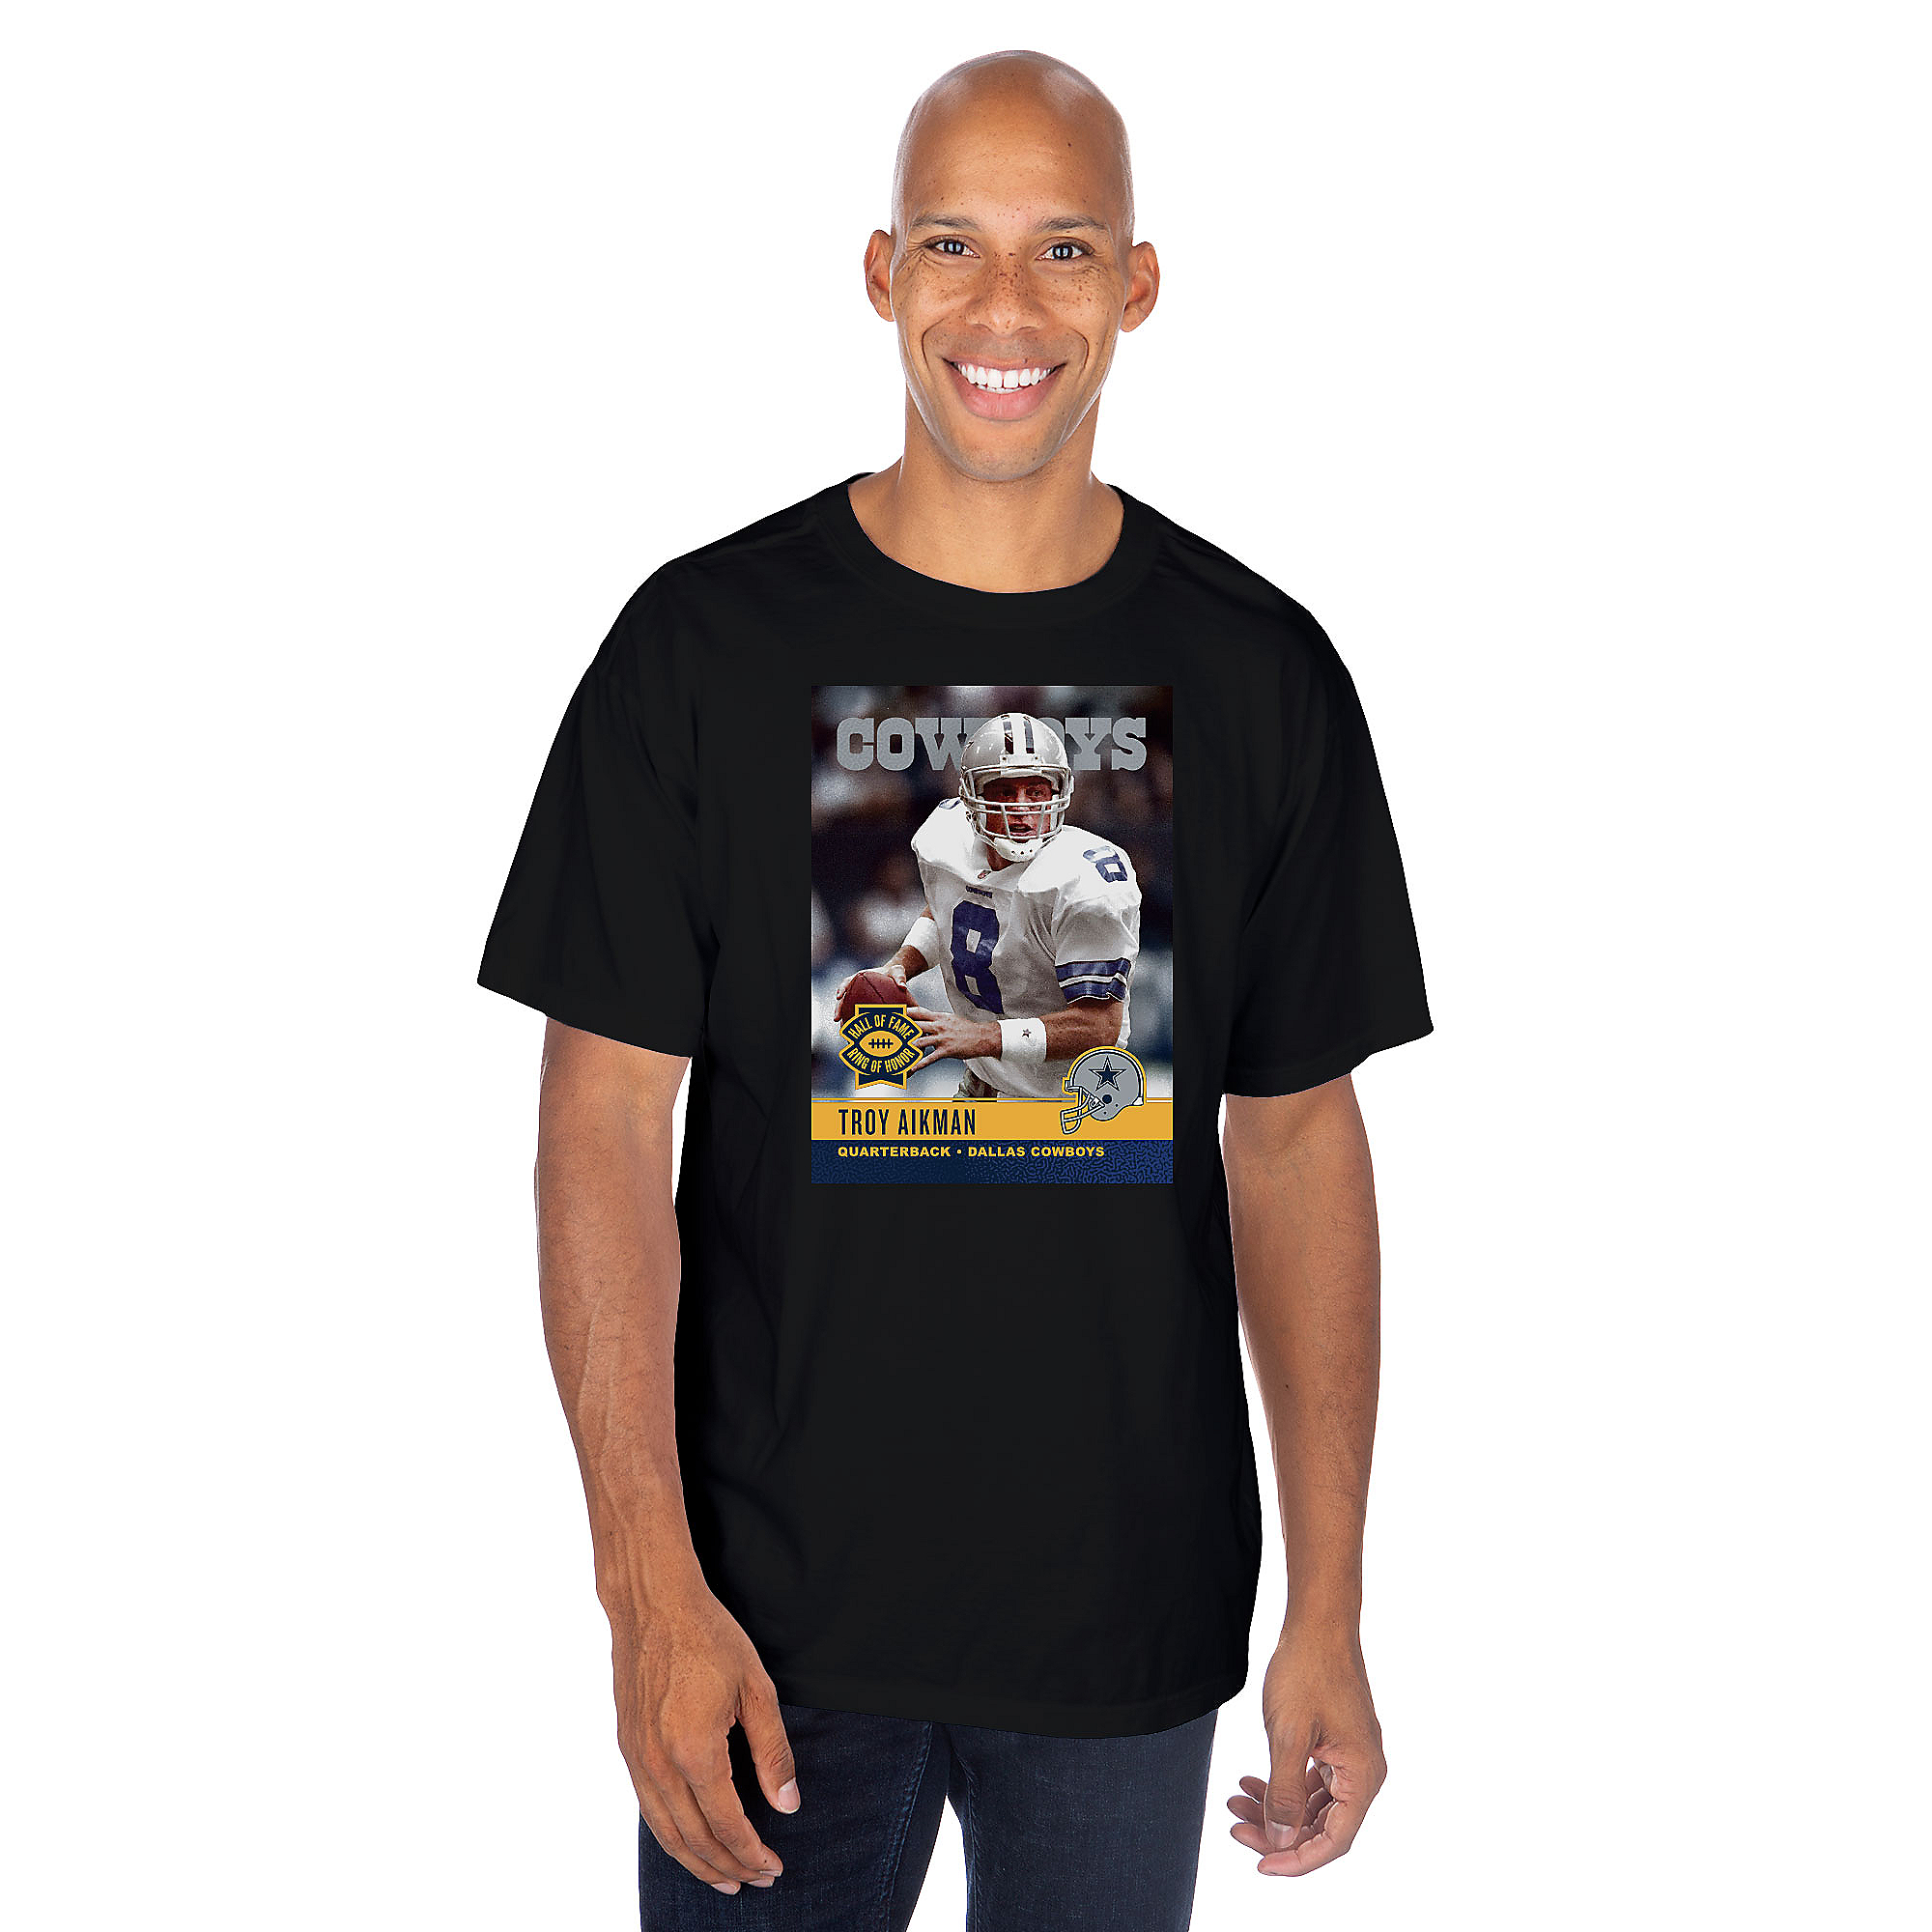 Dallas Cowboys America's Team Troy Aikman #8 T-Shirt